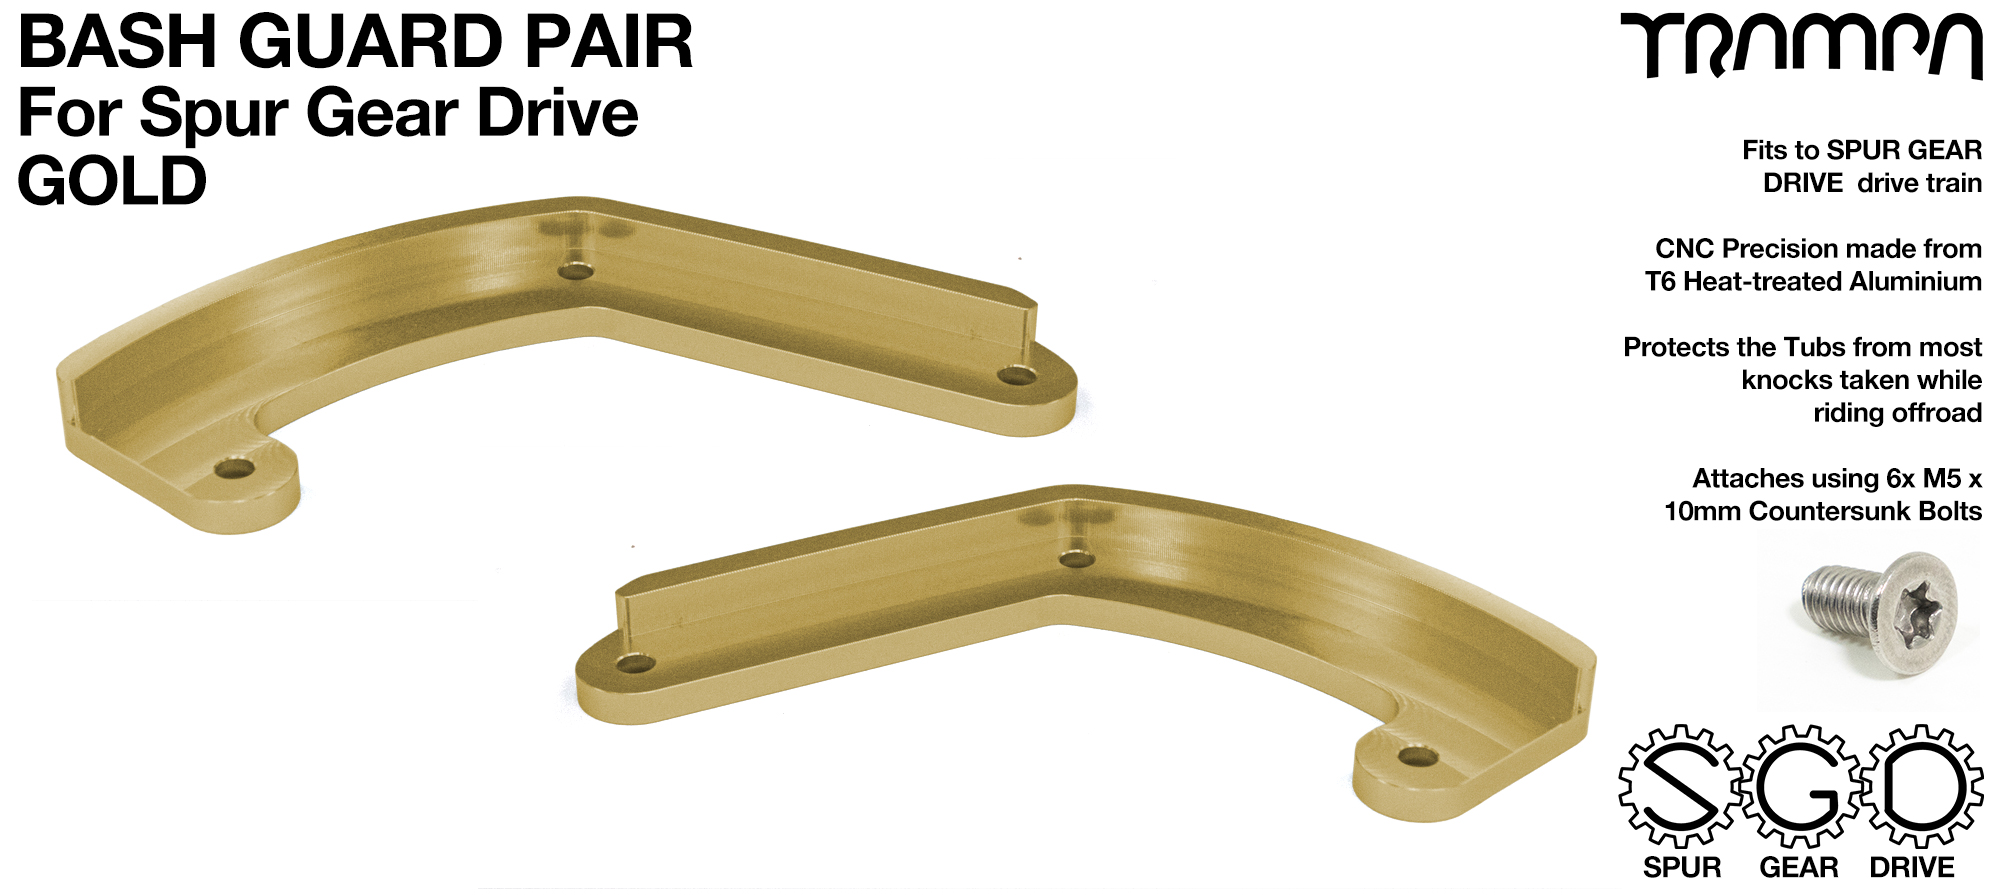 MkII Spur Gear Drive Bash Guards PAIR - GOLD